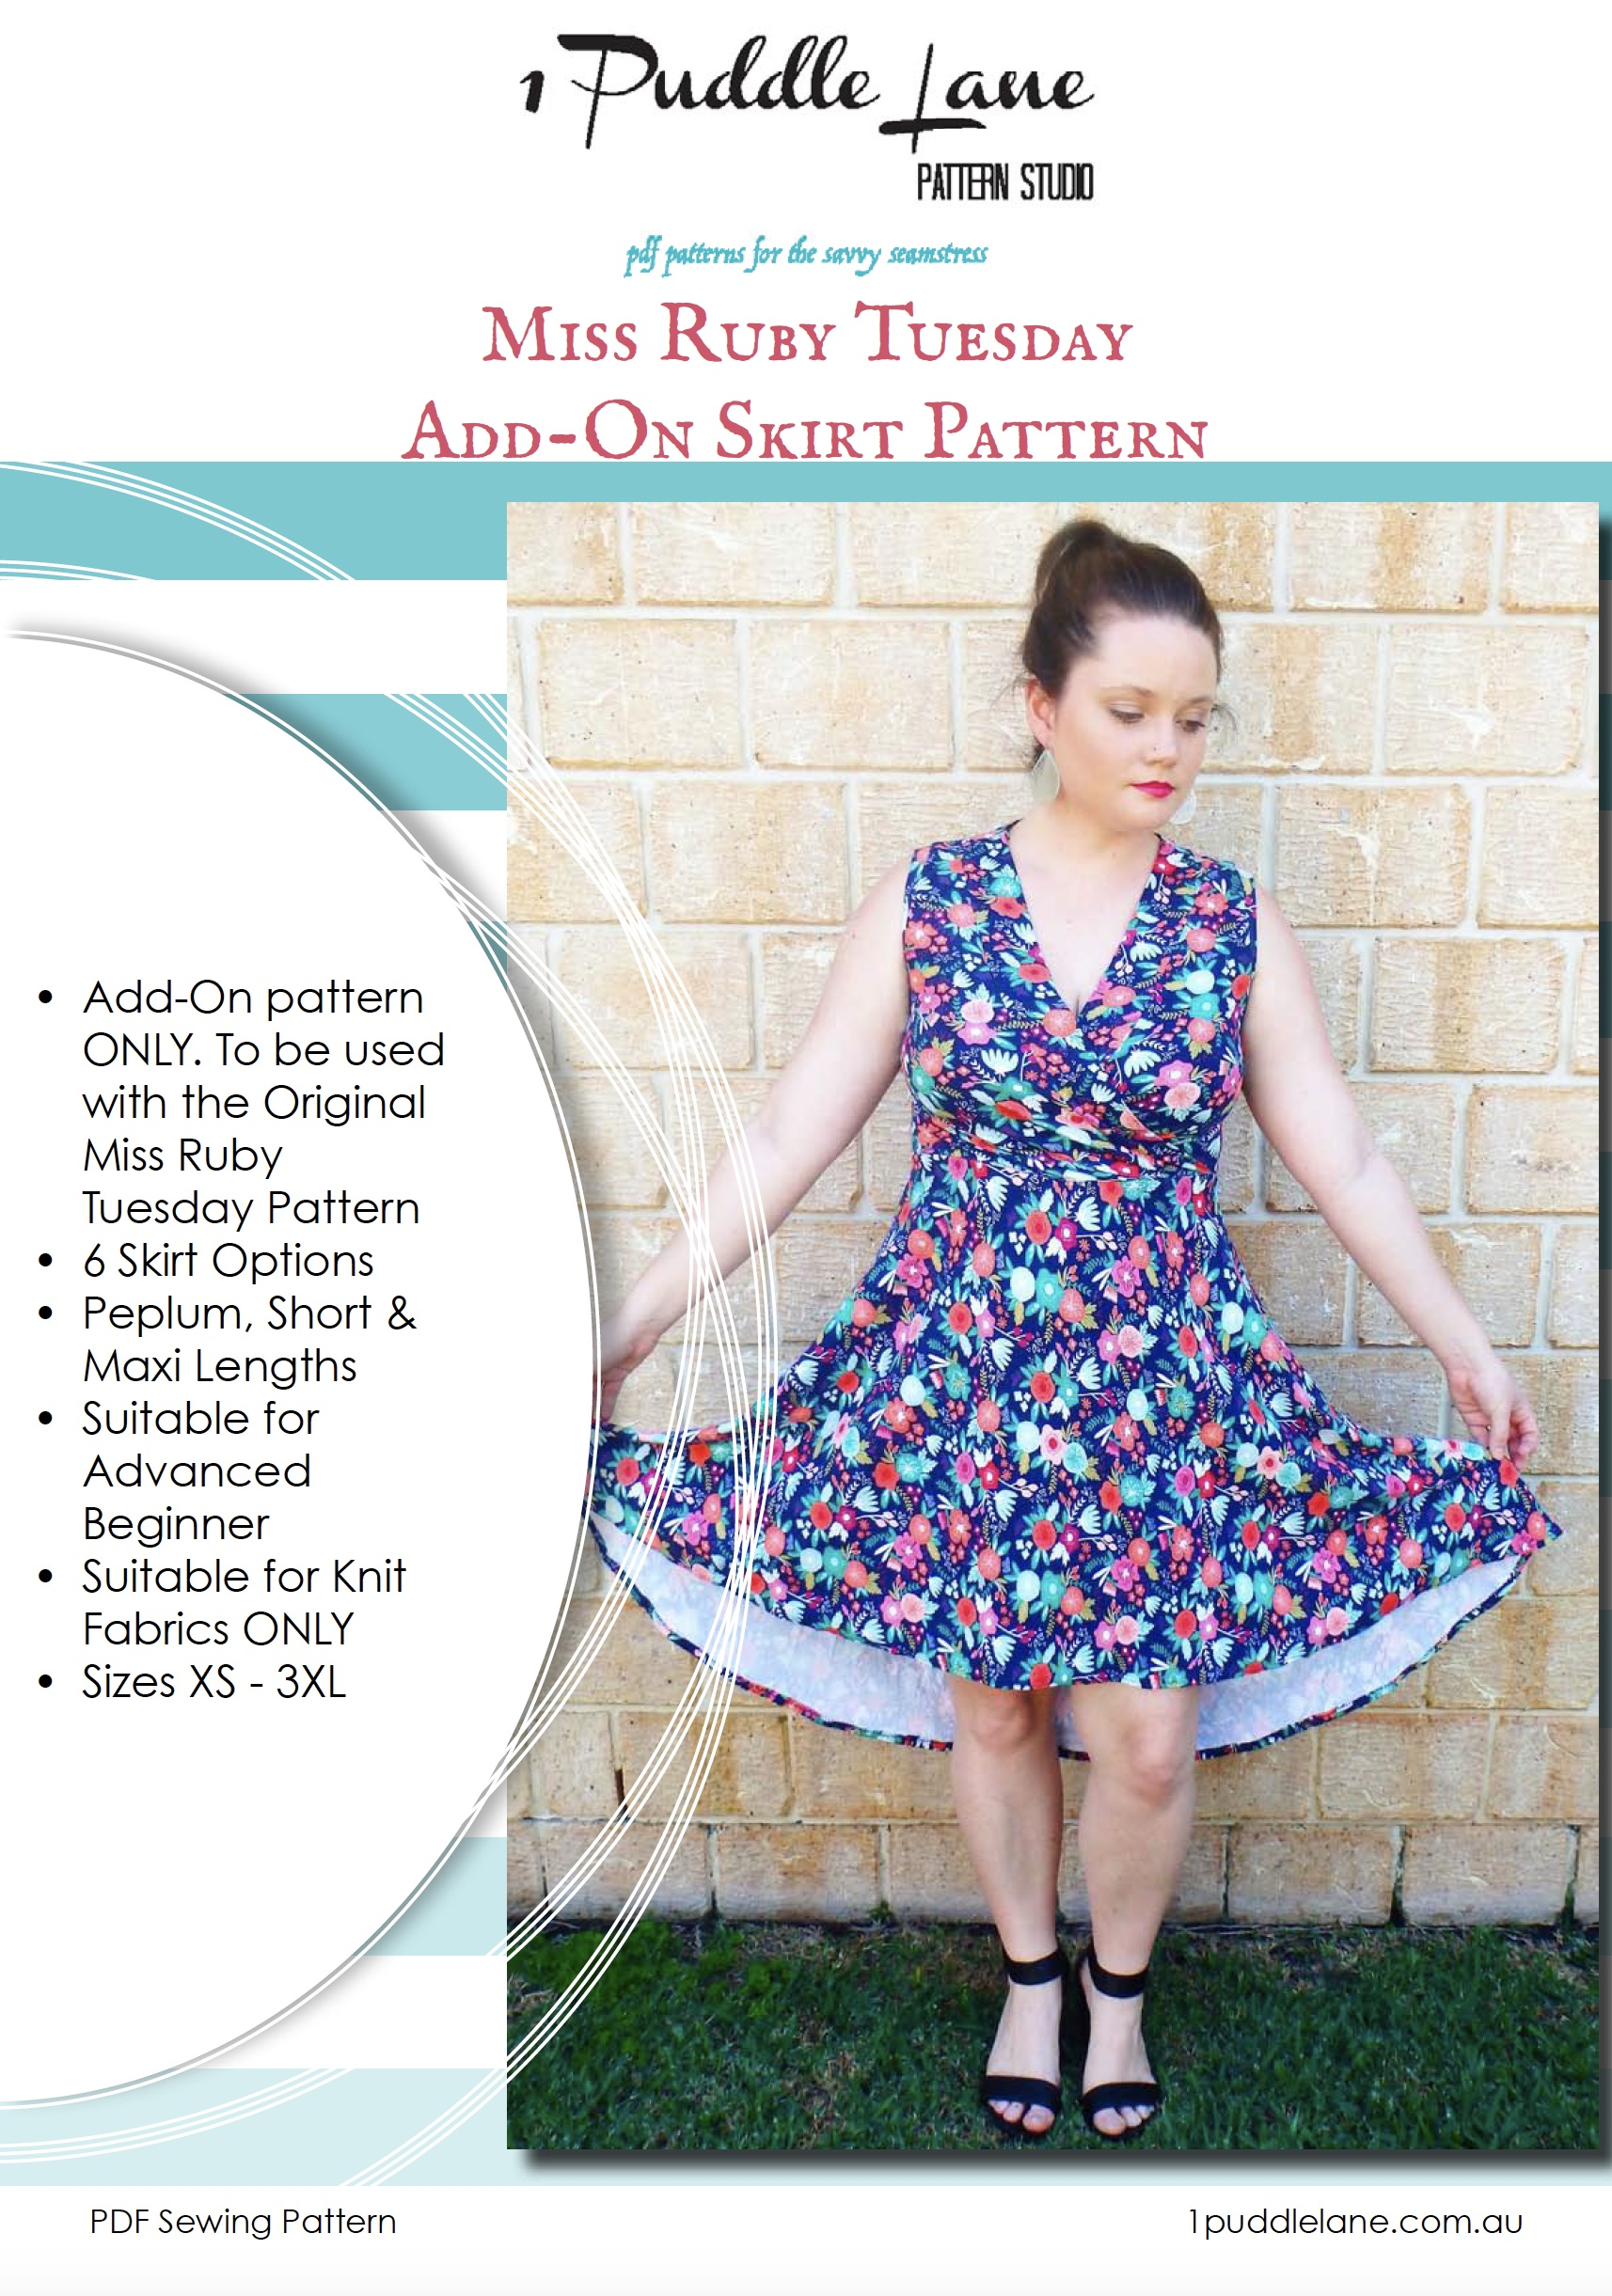 MiSS RUBY TUESDAY ADD-ON PATTERN – SKIRTS